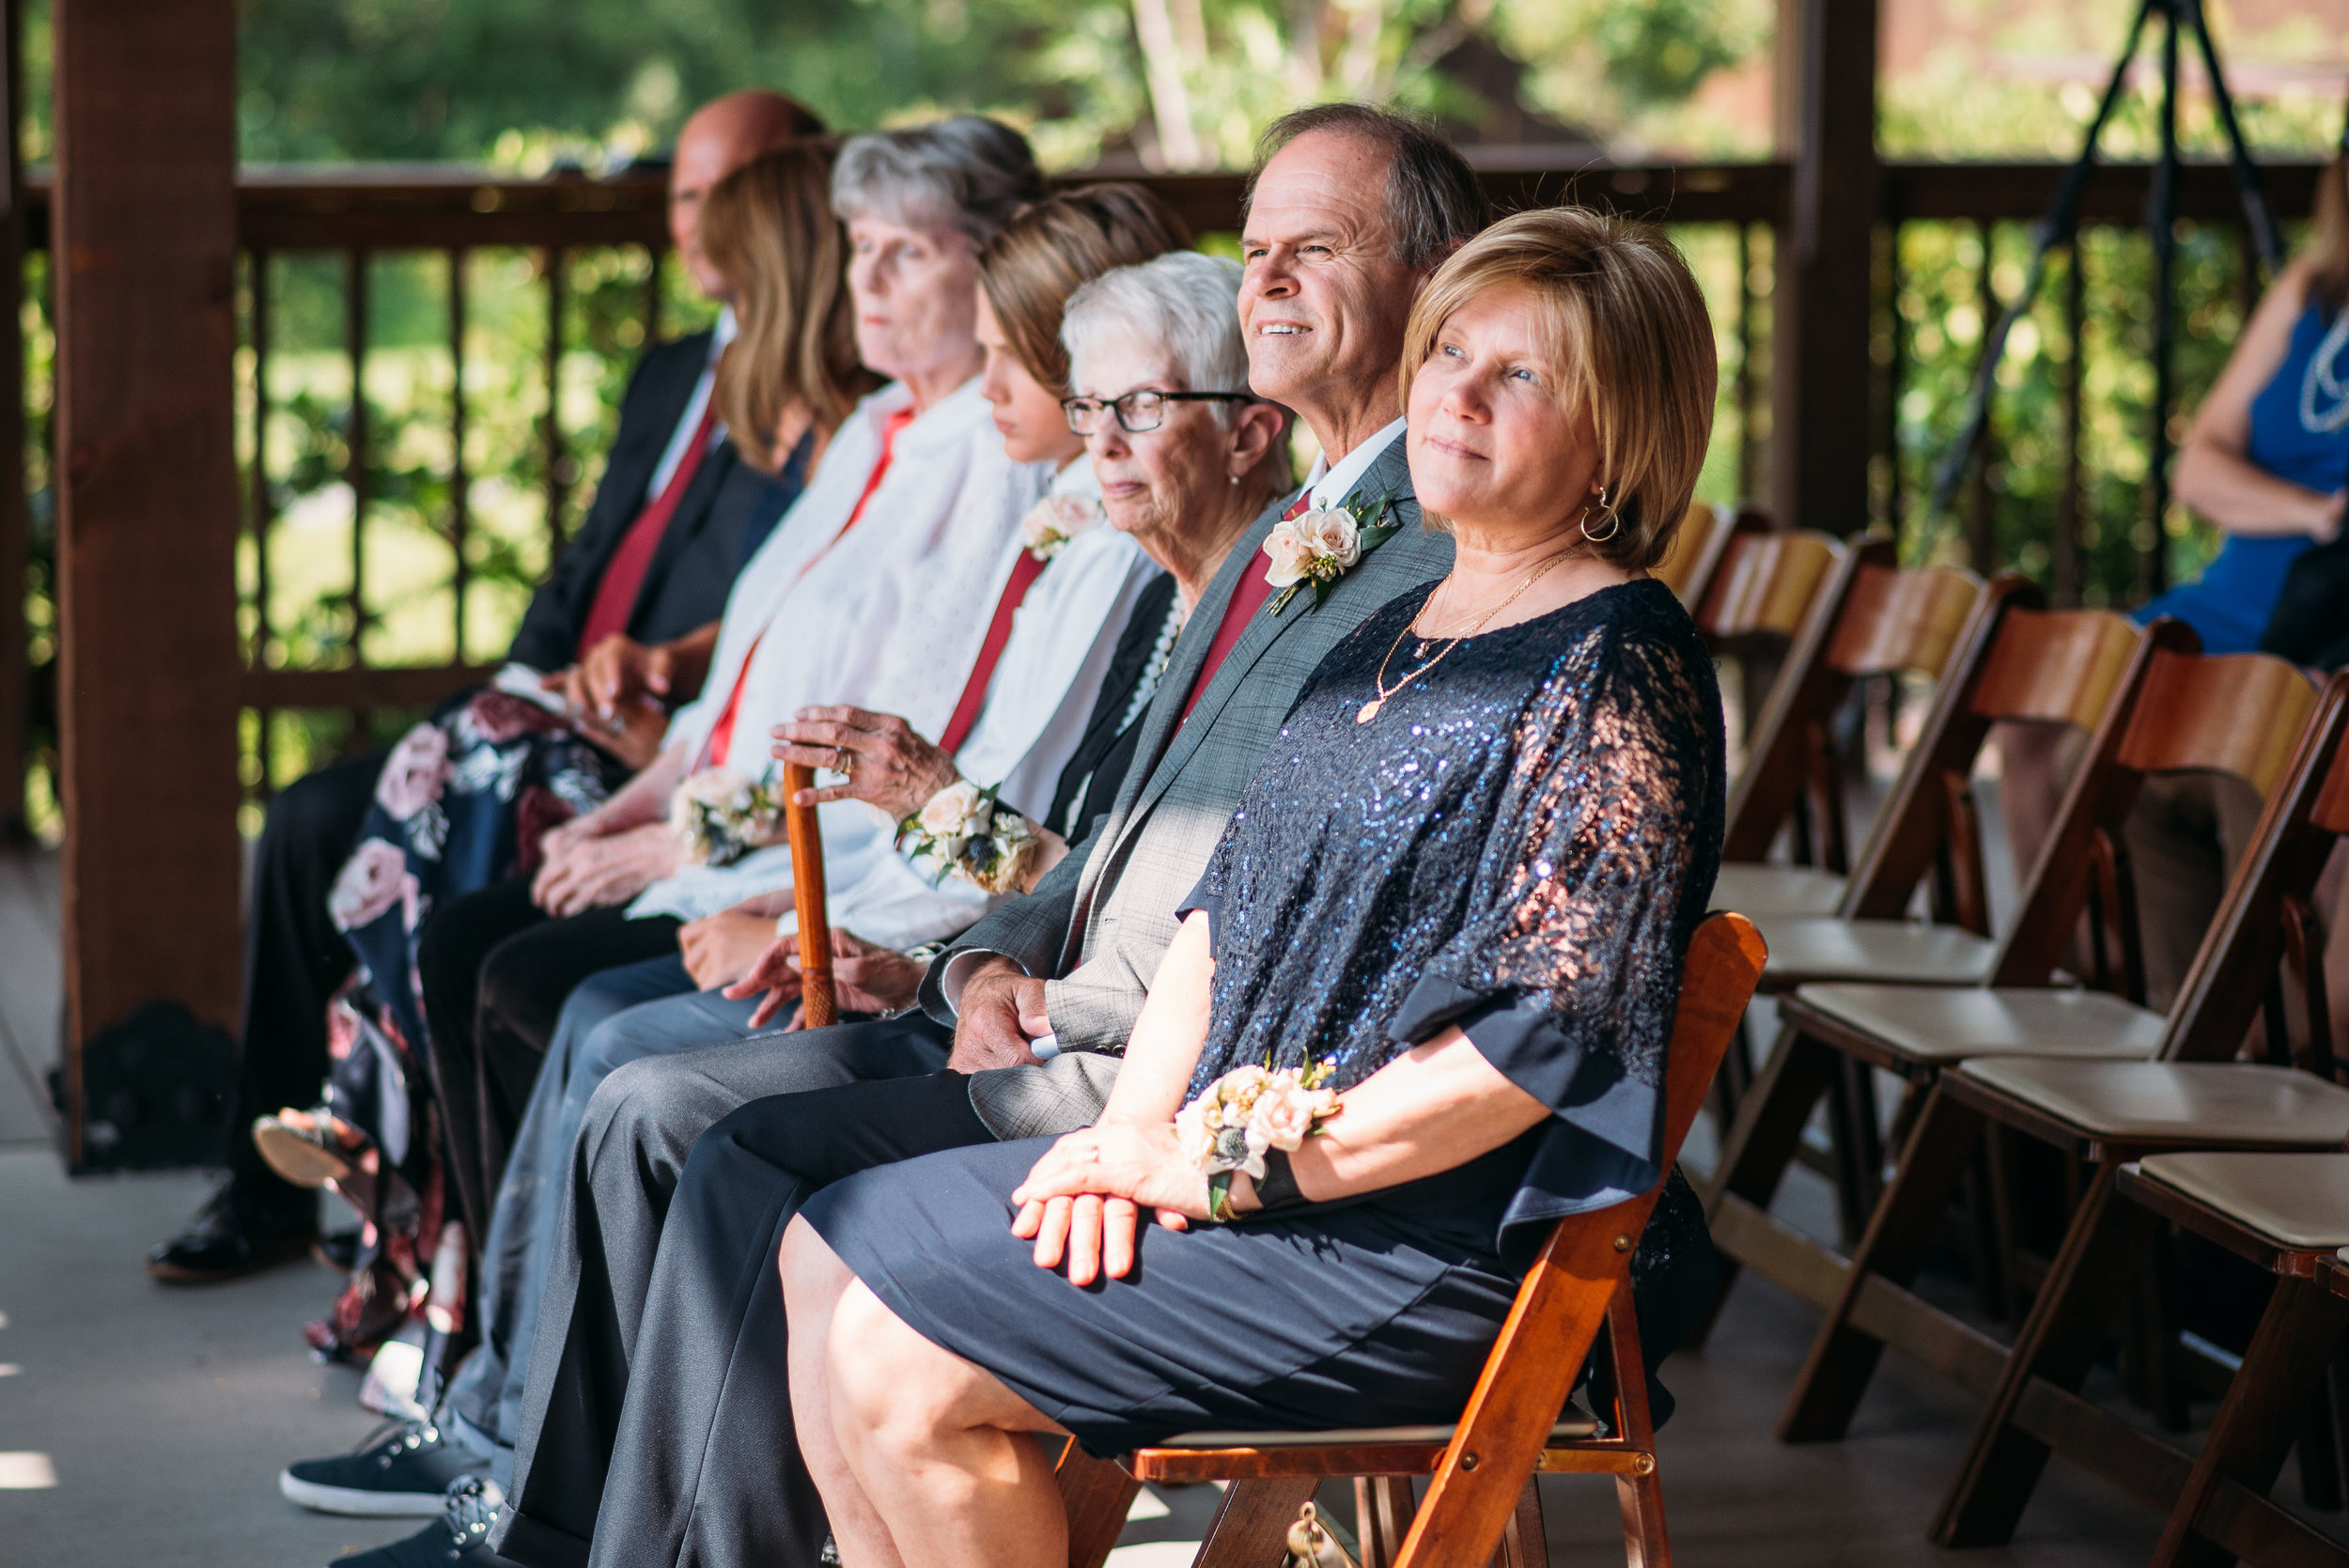 EmilyCody-Peach-Creek-Ranch-Wedding-Ceremony-Bridals-Engagement-College-Station-Photographer-Videographer-San-Angel-Photo-0168.jpg